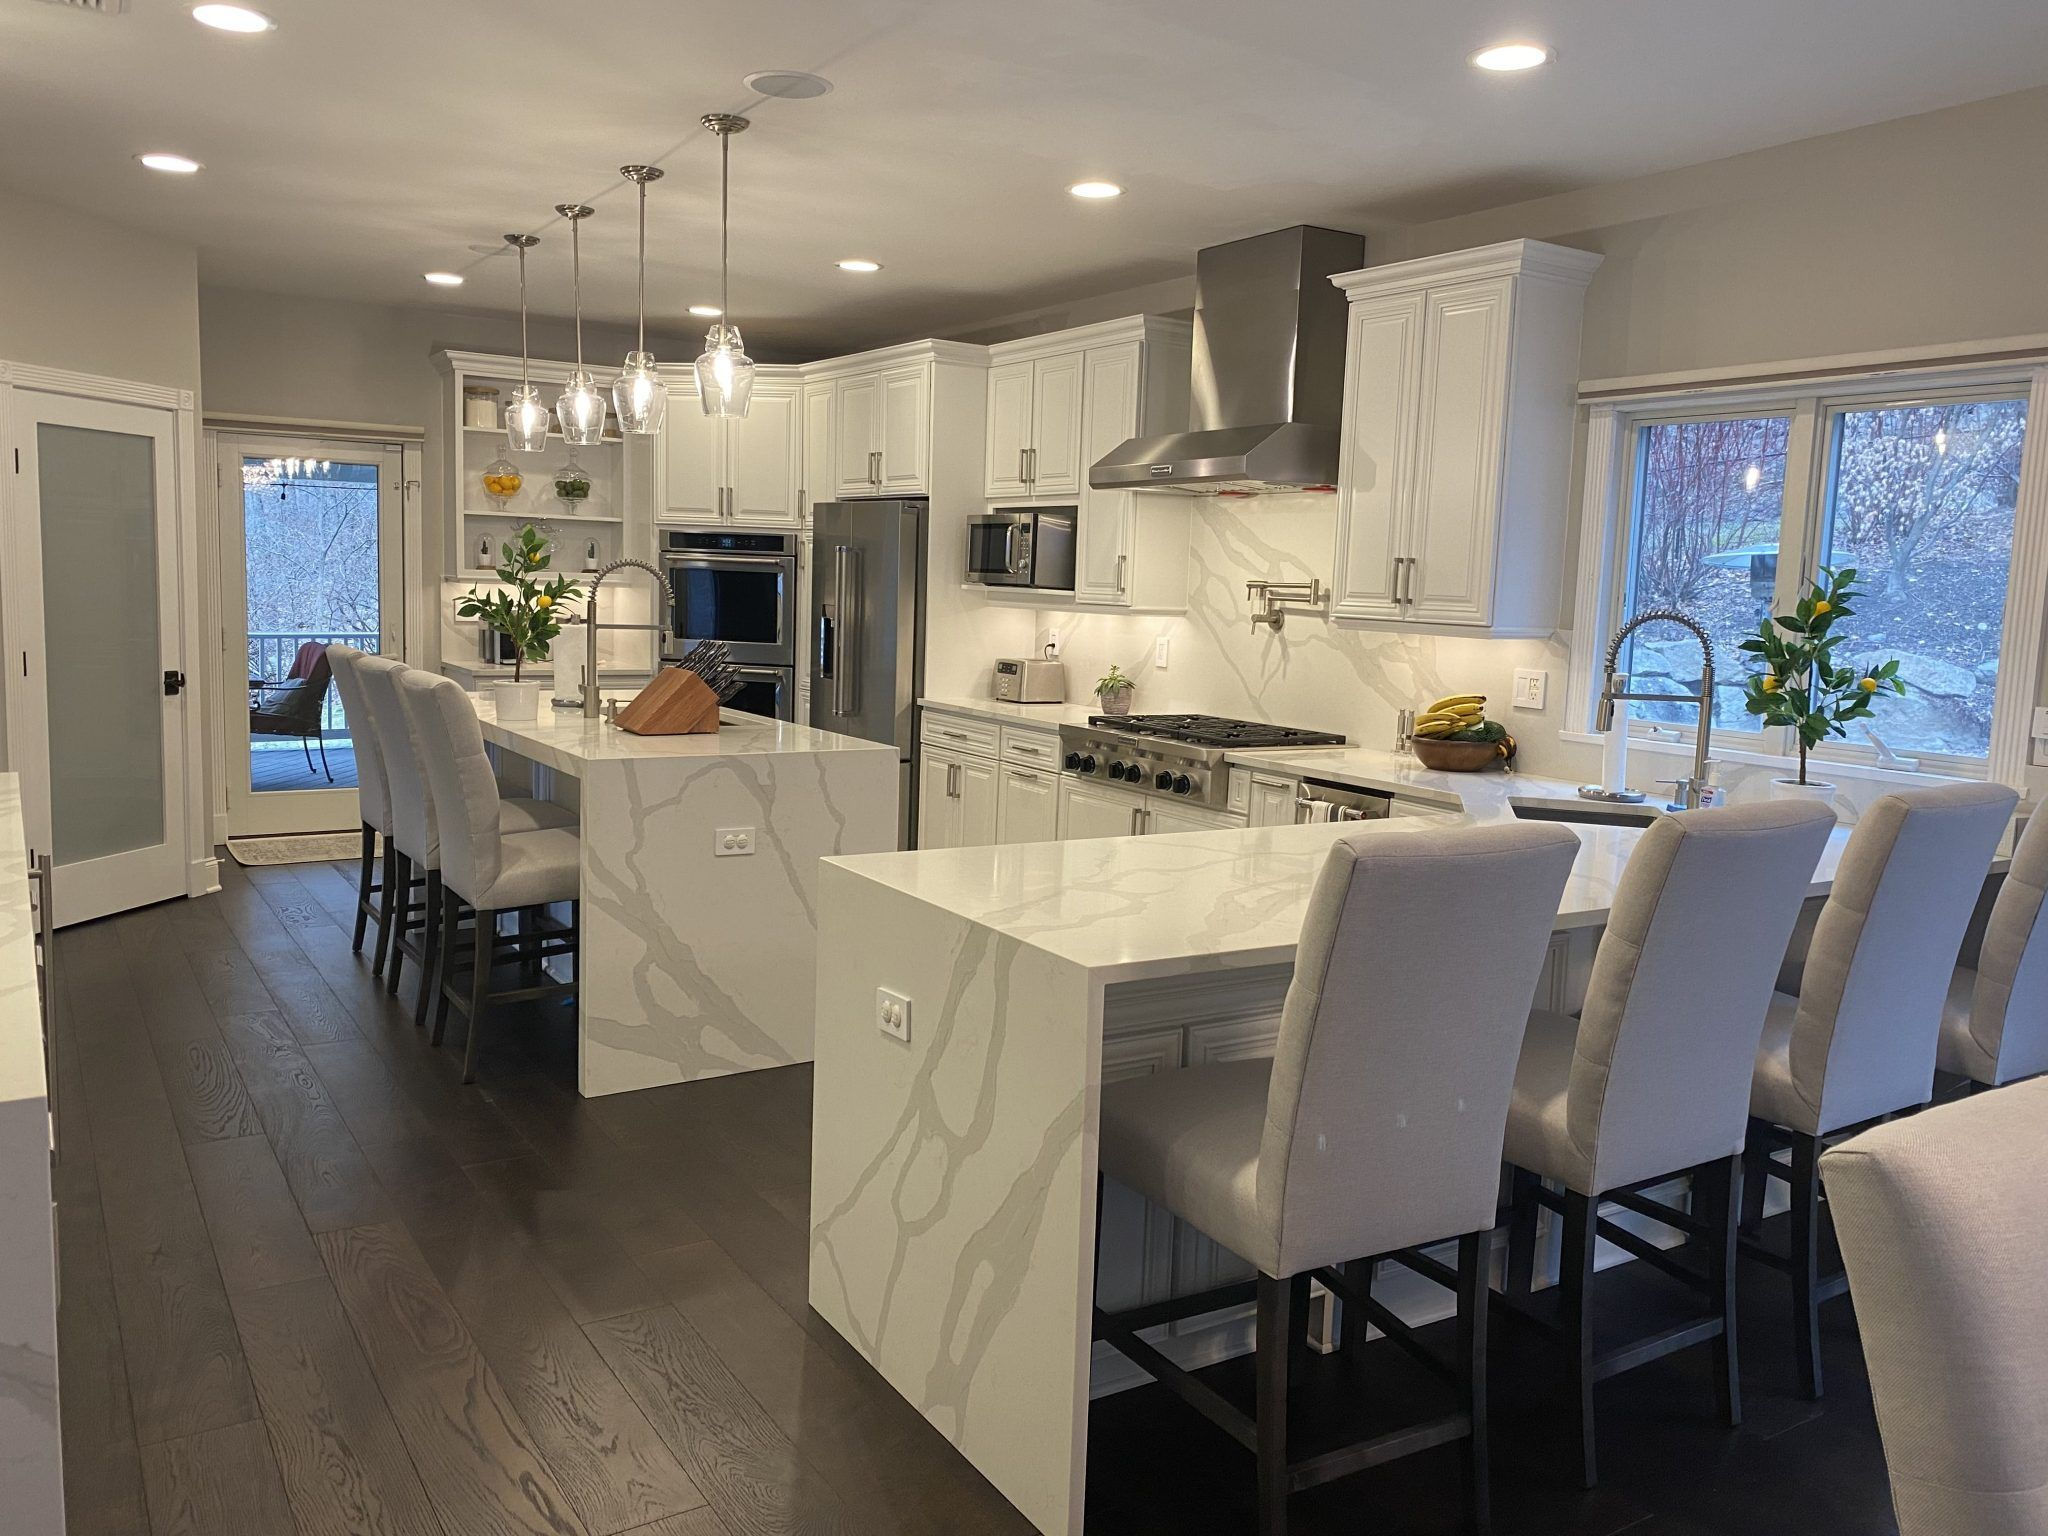 Have You Seen This Gorgeous Kitchen Space In Ringwood Nj Yet We Are So Happy And Proud To Say In 2020 Kitchen Decor Modern Free Kitchen Design Kitchen Remodel Small